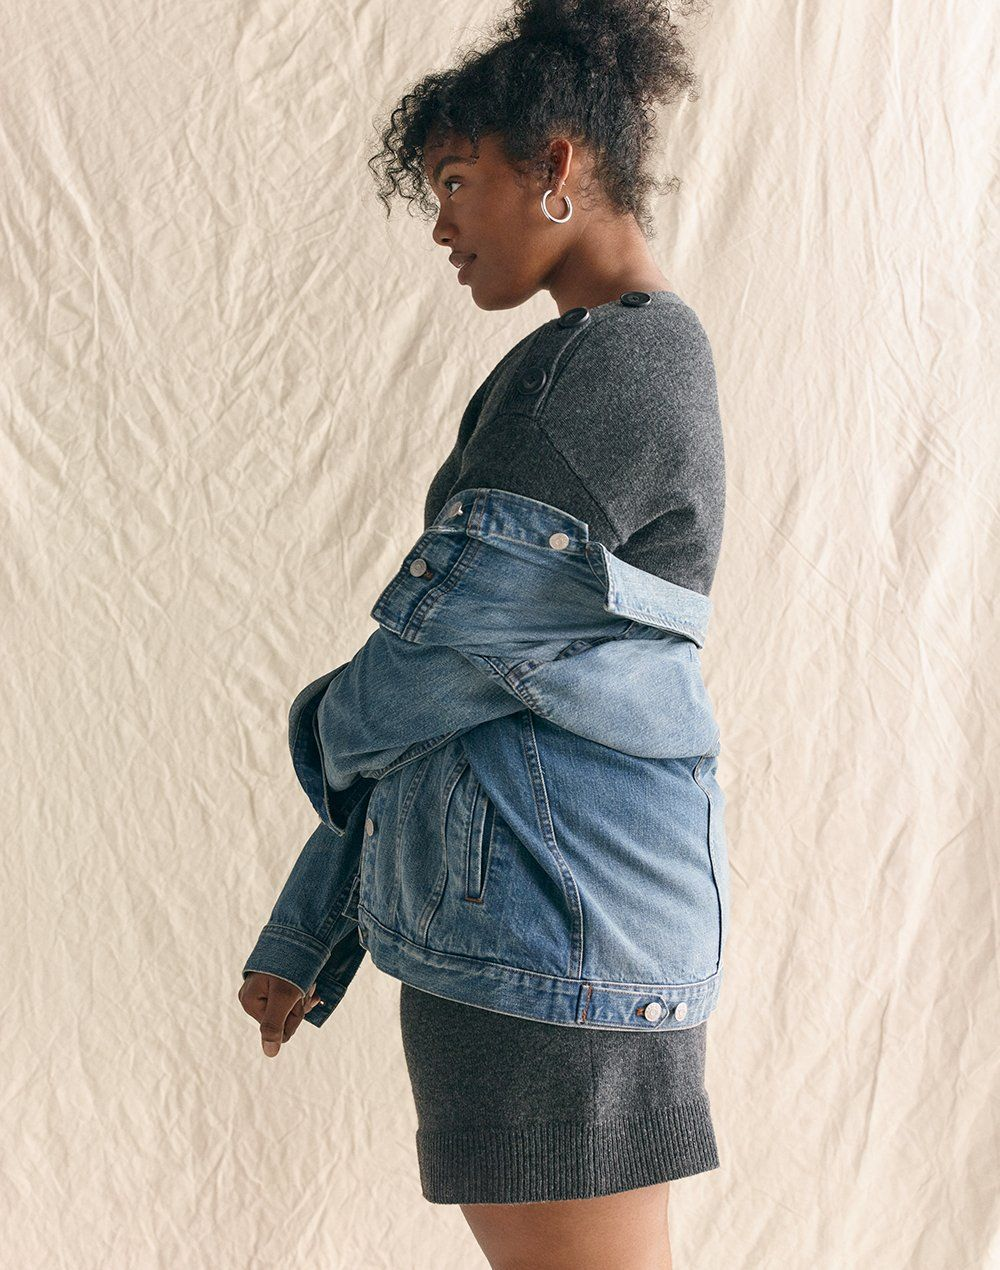 c14a842738f2c madewell oversized jean jacket worn with boatneck button-shoulder  sweater-dress + chunky medium hoop earrings.